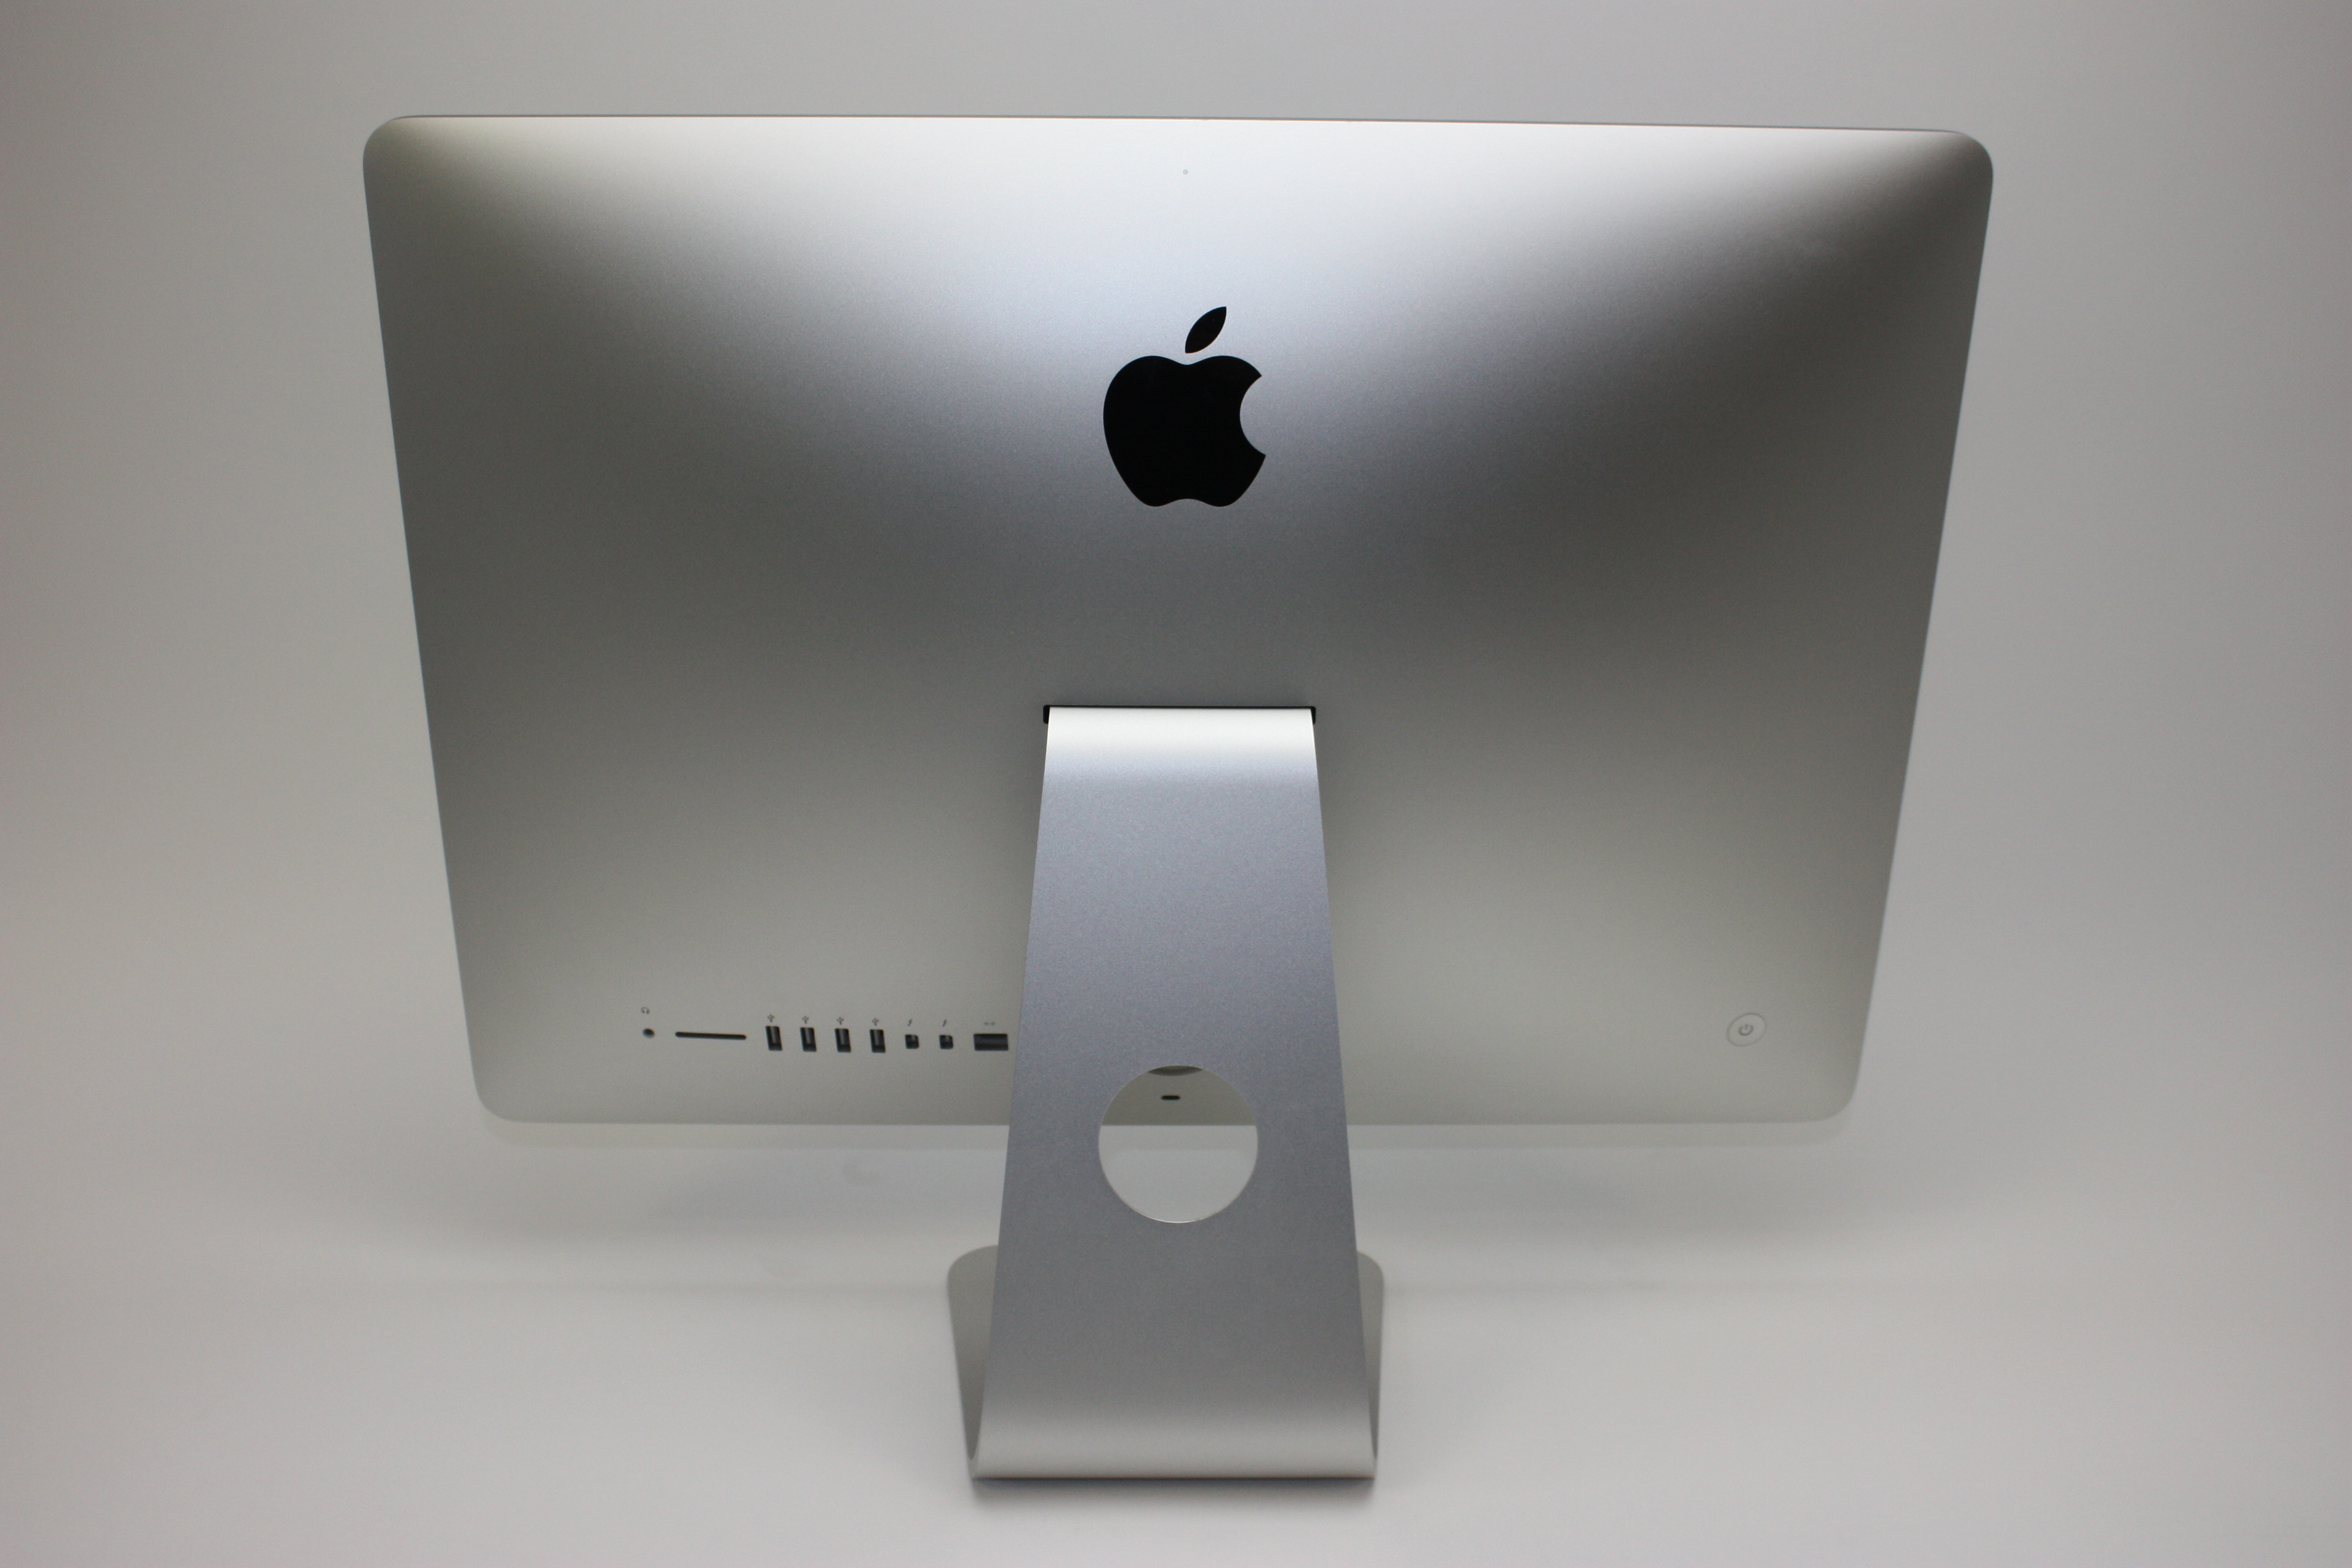 iMac 21.5-inch, 2.7 GHz Intel Core i5, 8 GB 1600 MHz DDR3, 1 TB SATA Disk, Product age: 52 months, image 3